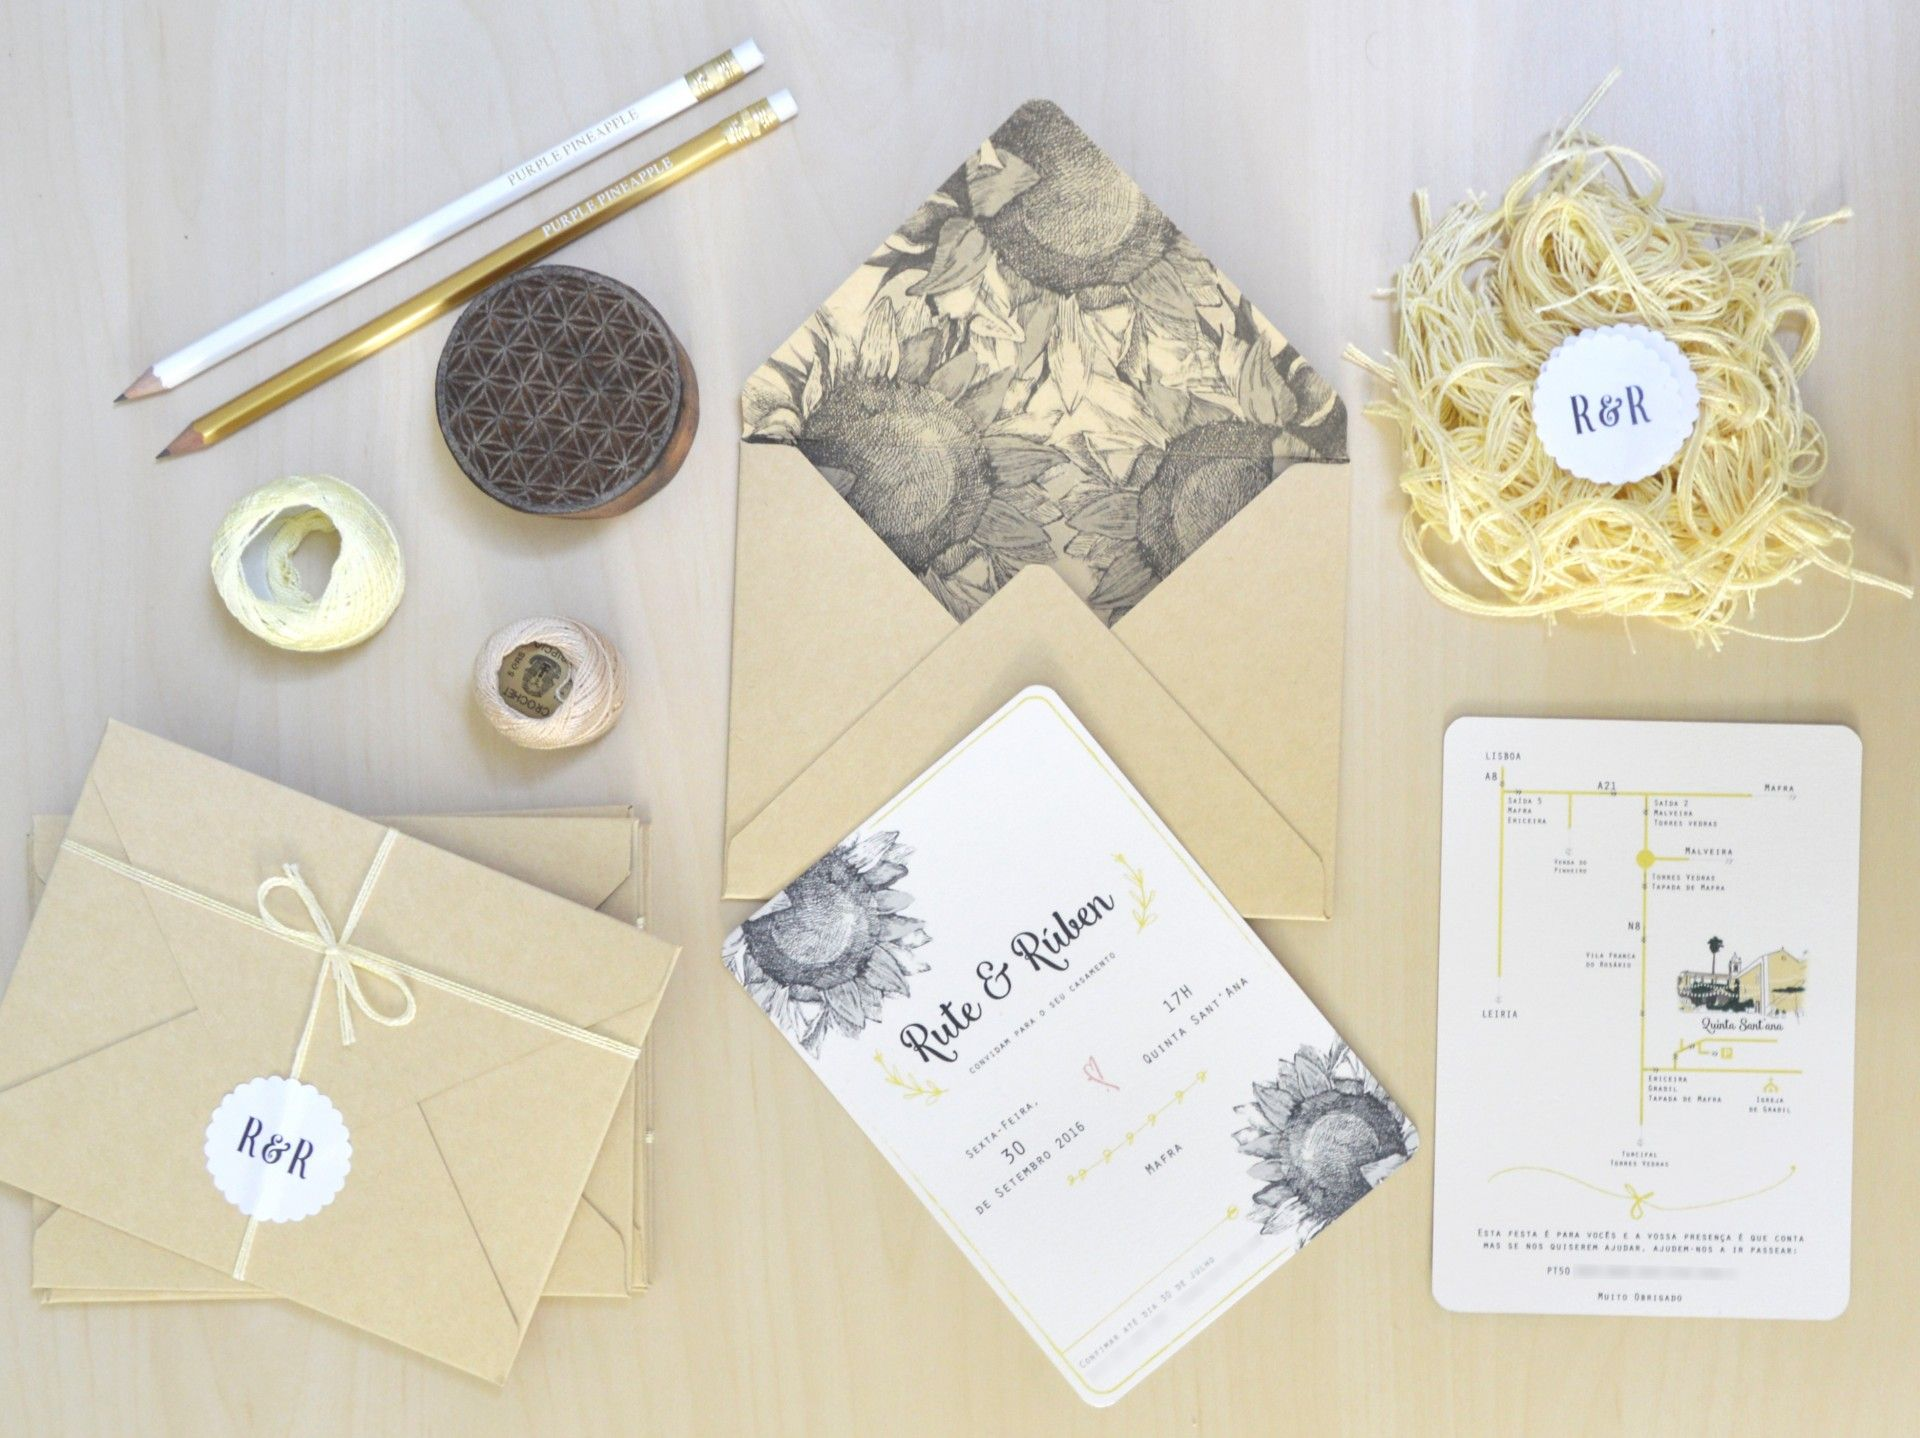 Rustic Sunflower wedding stationery with sunflower illustration